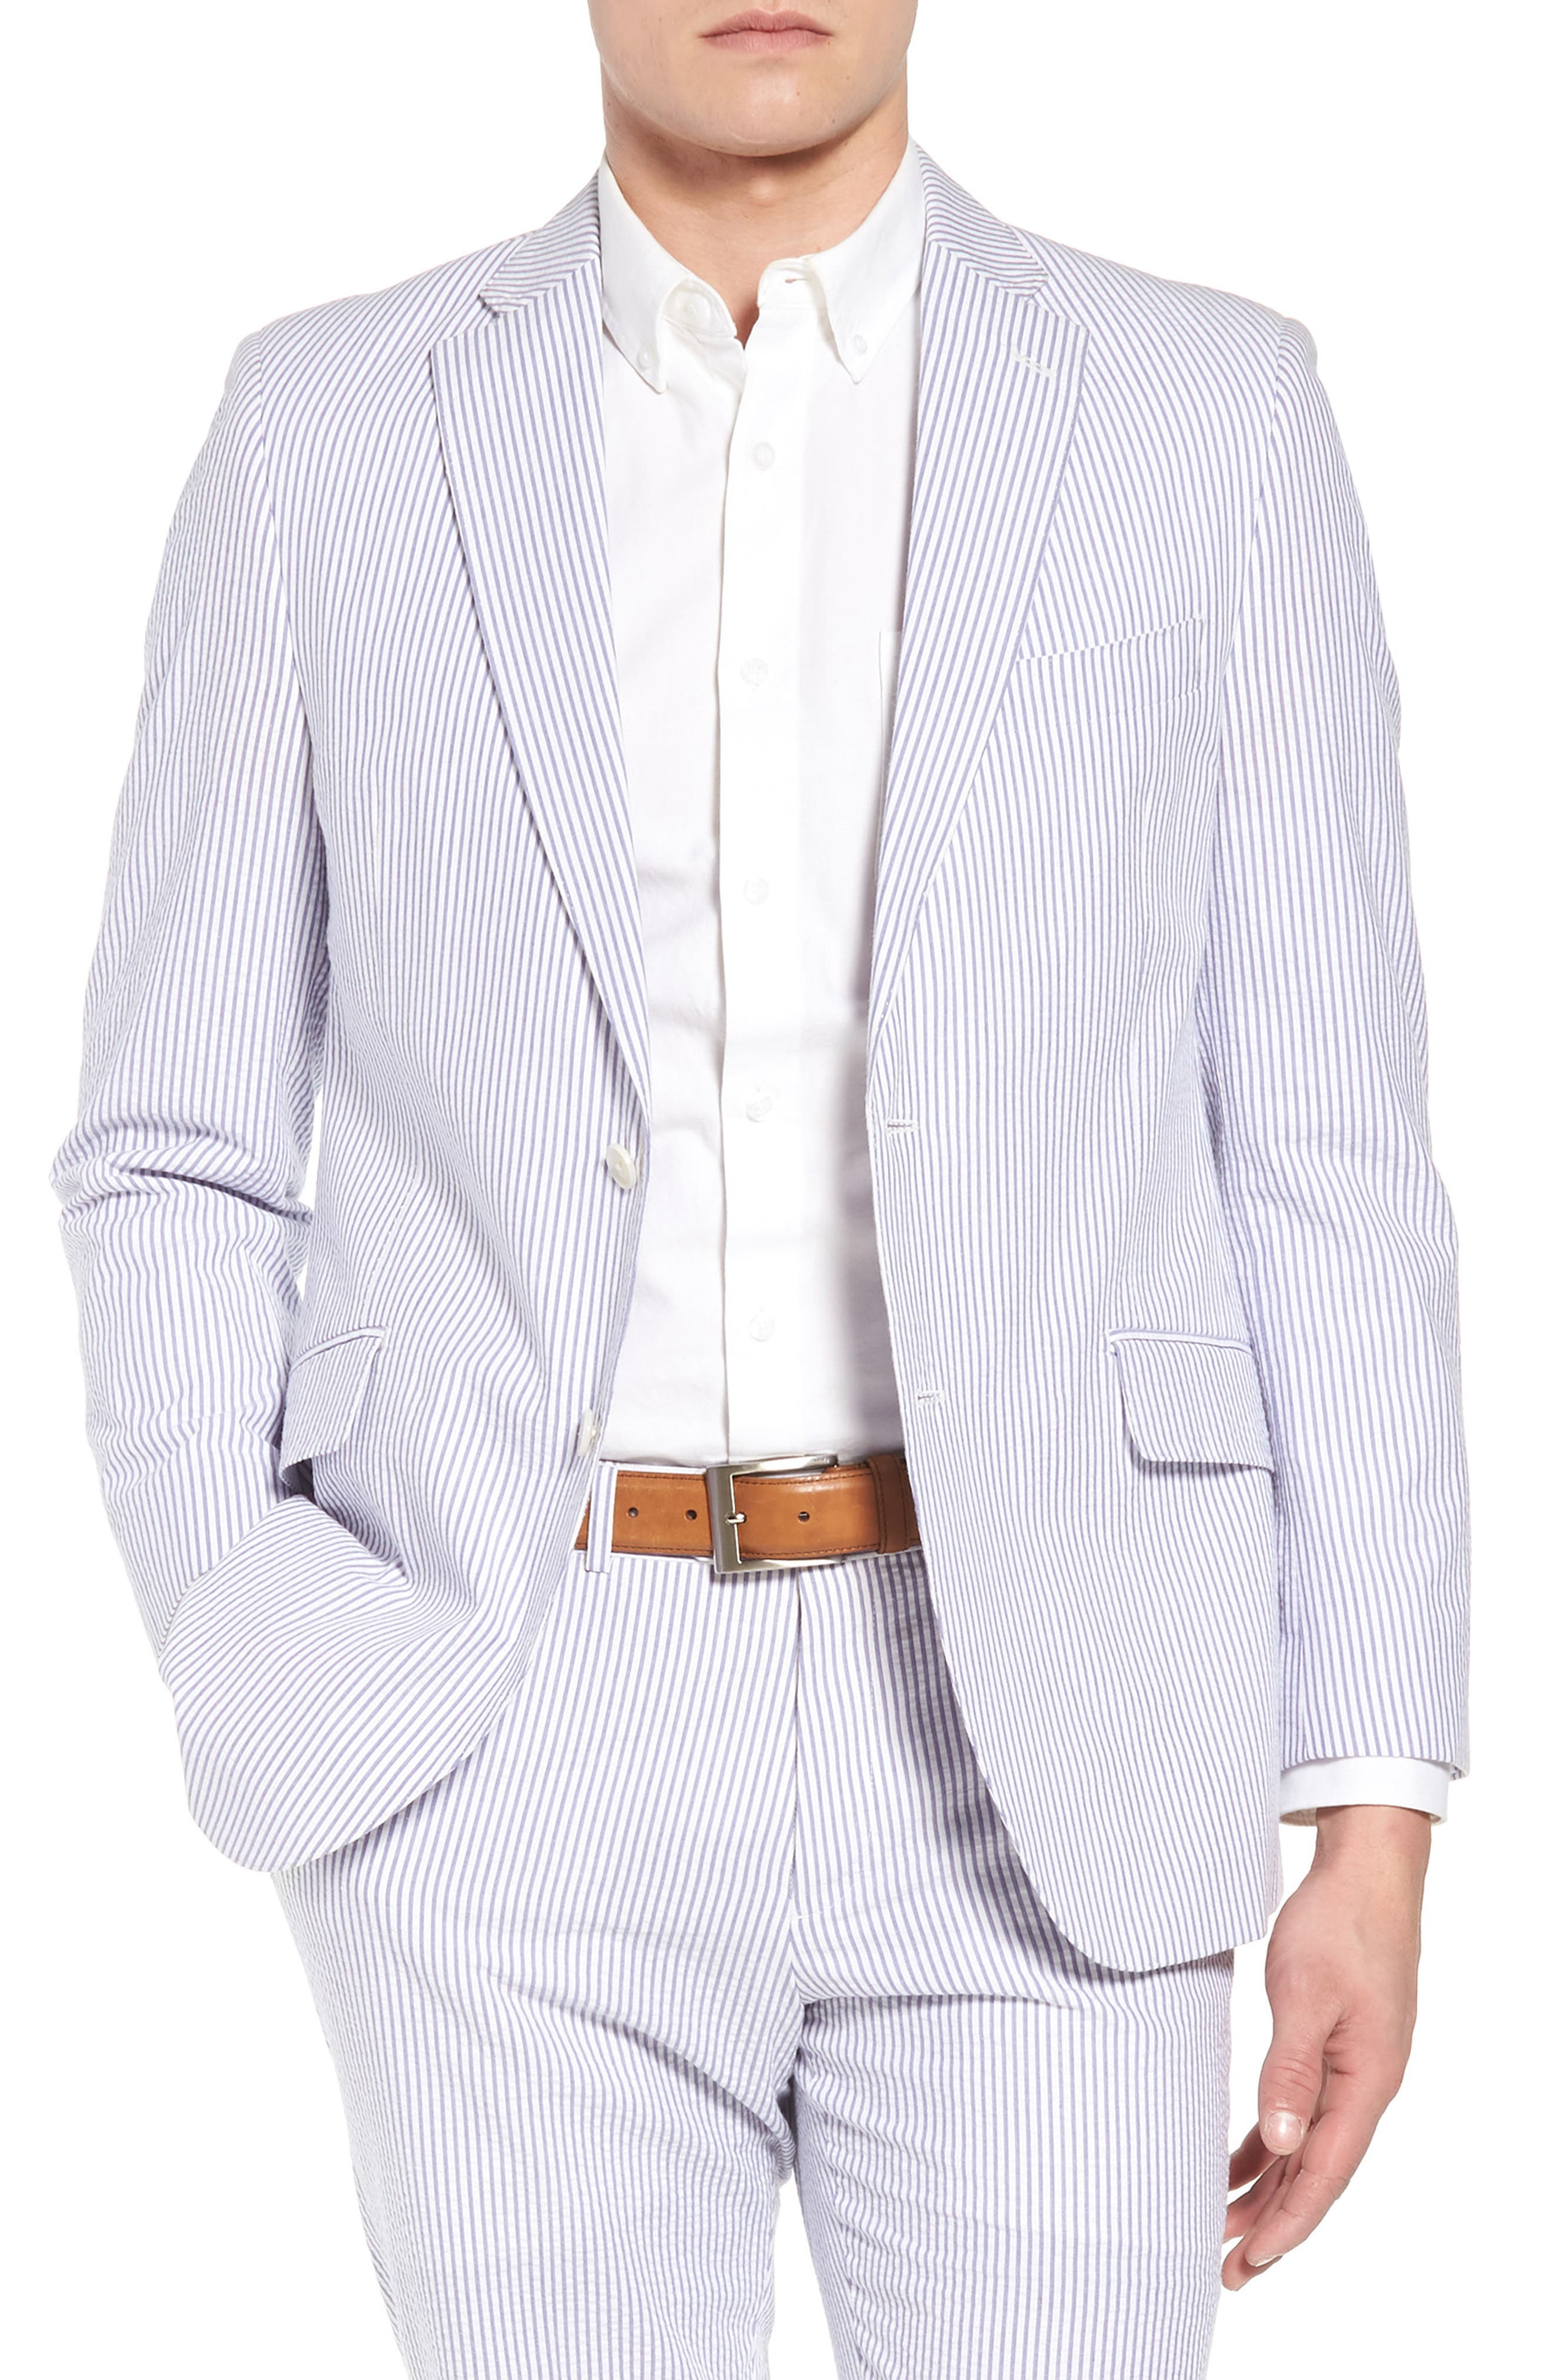 Jack AIM Classic Fit Seersucker Sport Coat,                         Main,                         color, BLUE AND WHITE